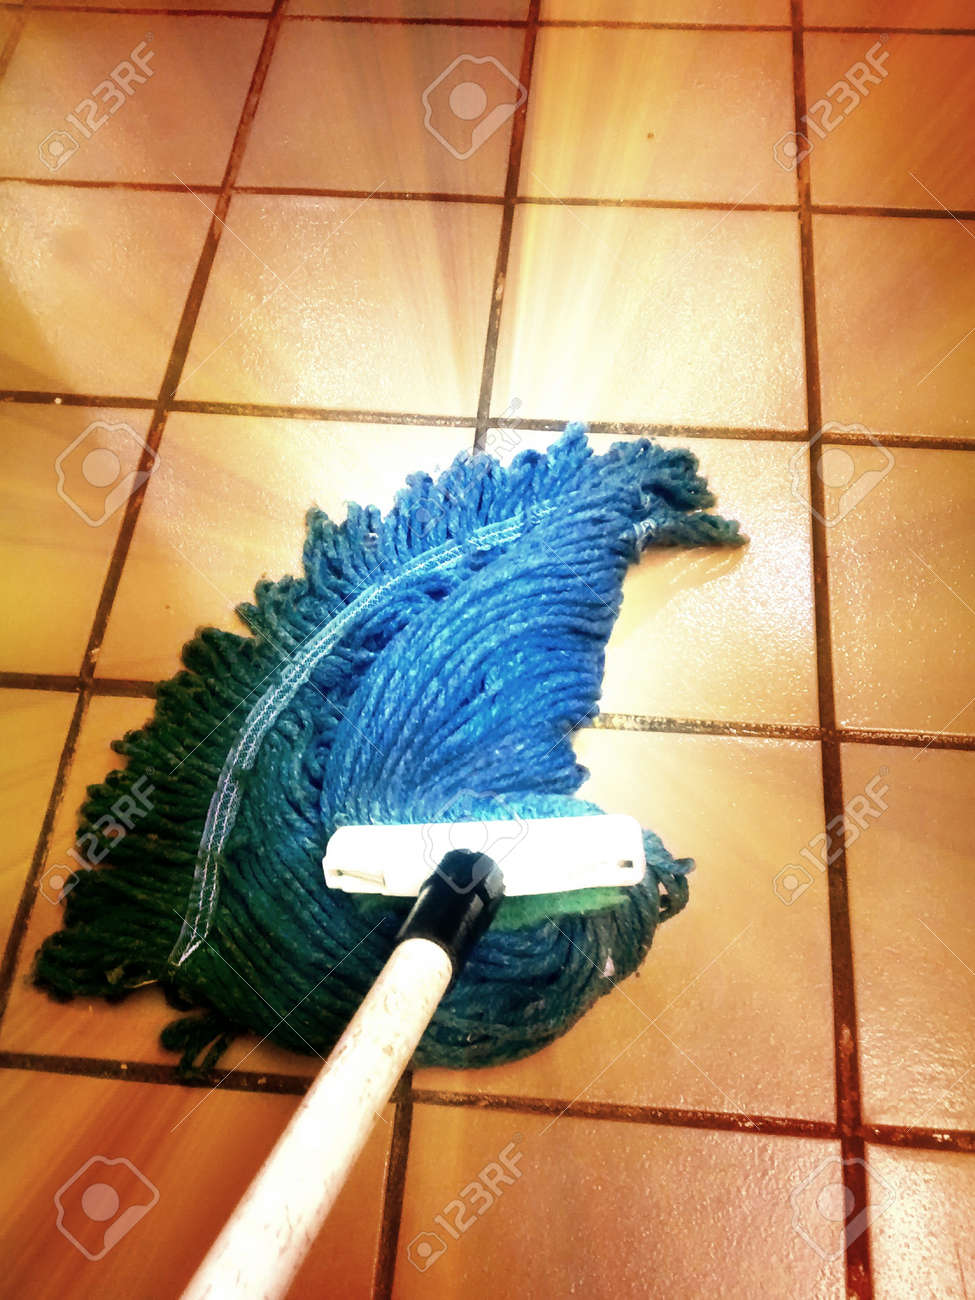 Blue yarn mop mopping tile floor stock photo picture and royalty blue yarn mop mopping tile floor stock photo 56444758 dailygadgetfo Image collections